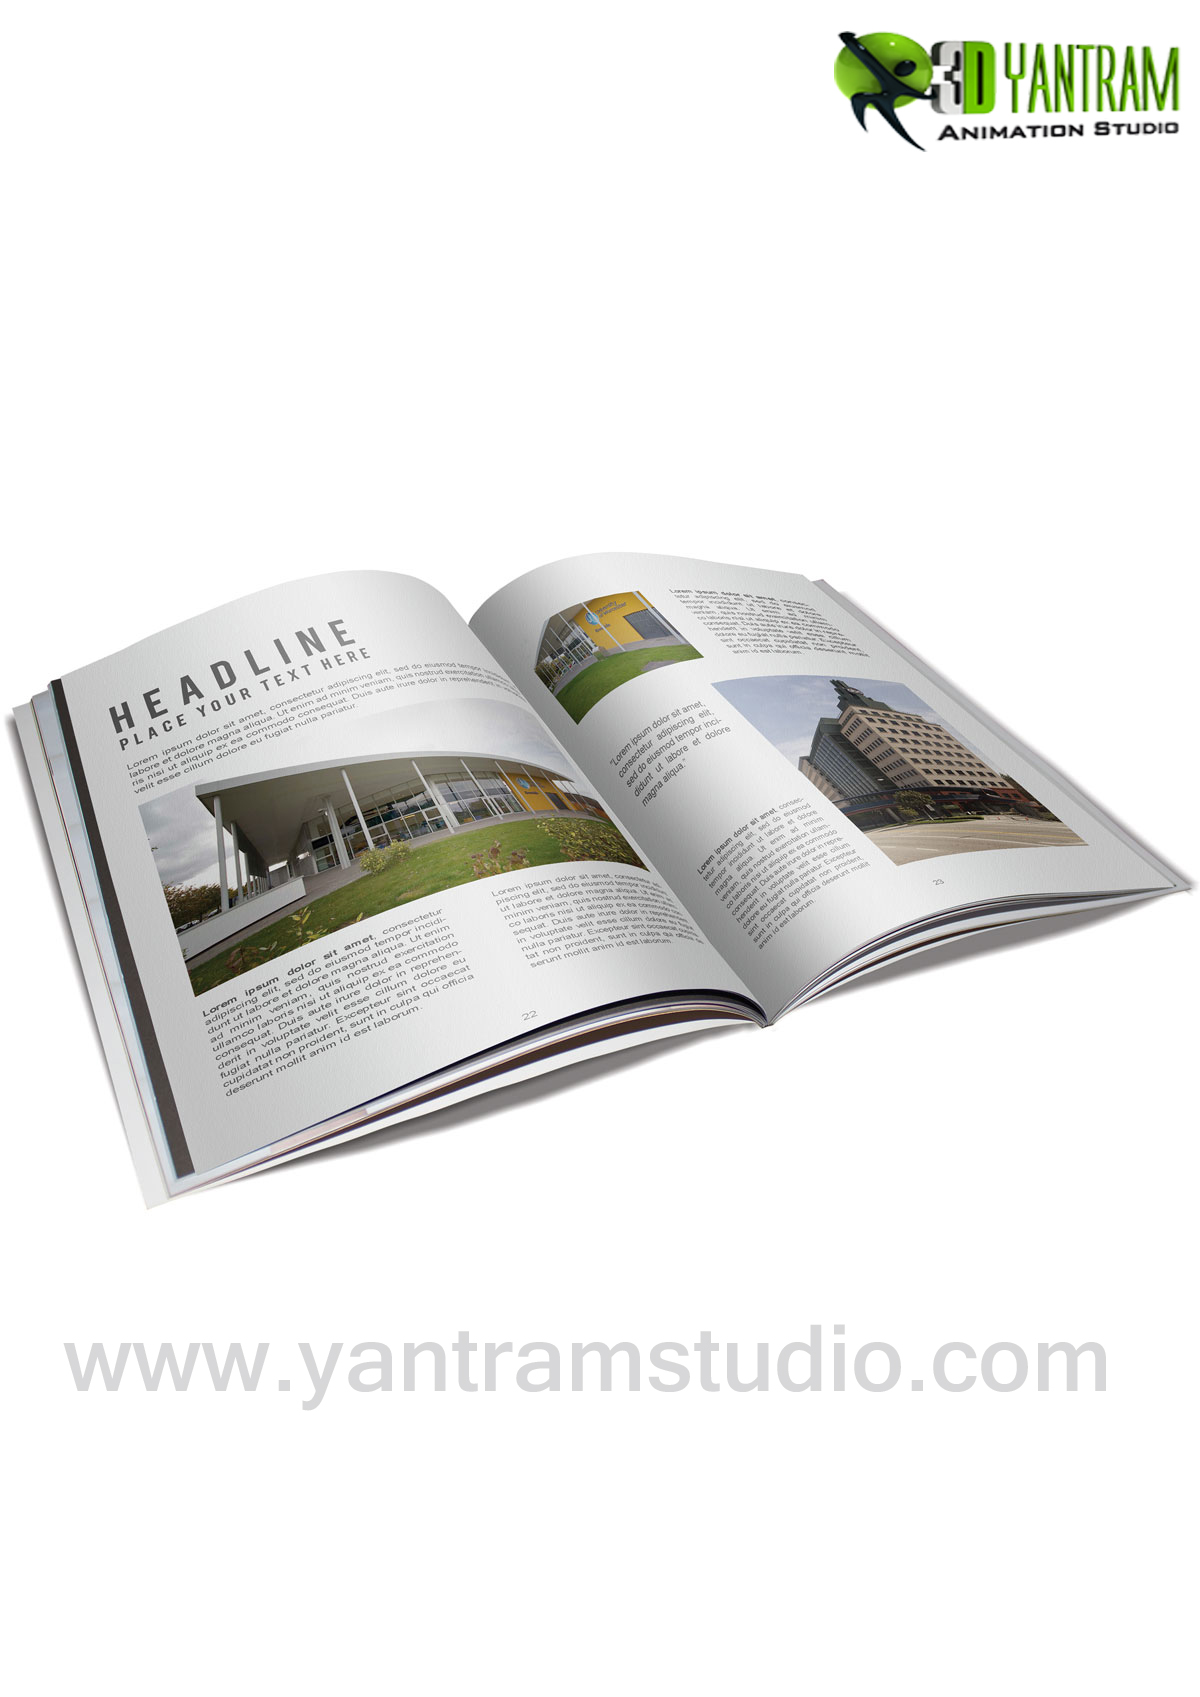 Real Estate Booklet Services By Yantram website development - New jersey, USA Digital Media Branding & Broadcasting Agency provides highly creative Interactive web app, Web Development, corporate identity. by yantramstudio